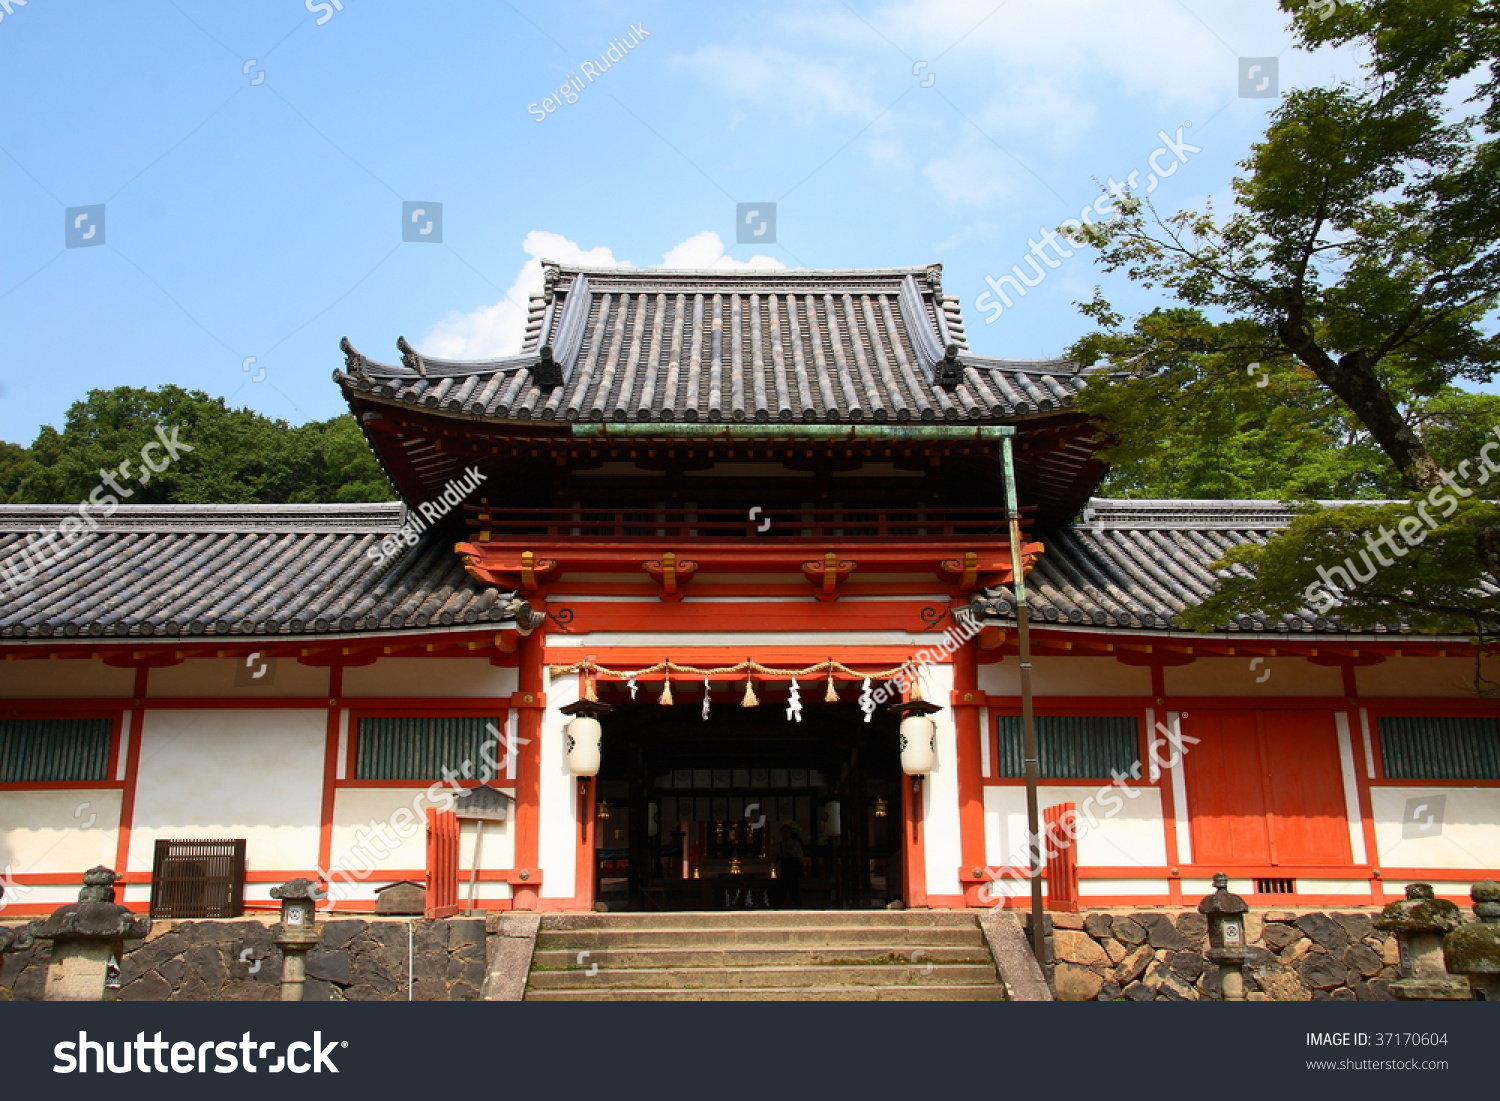 ancient japanese architecture stock photo edit now shutterstock